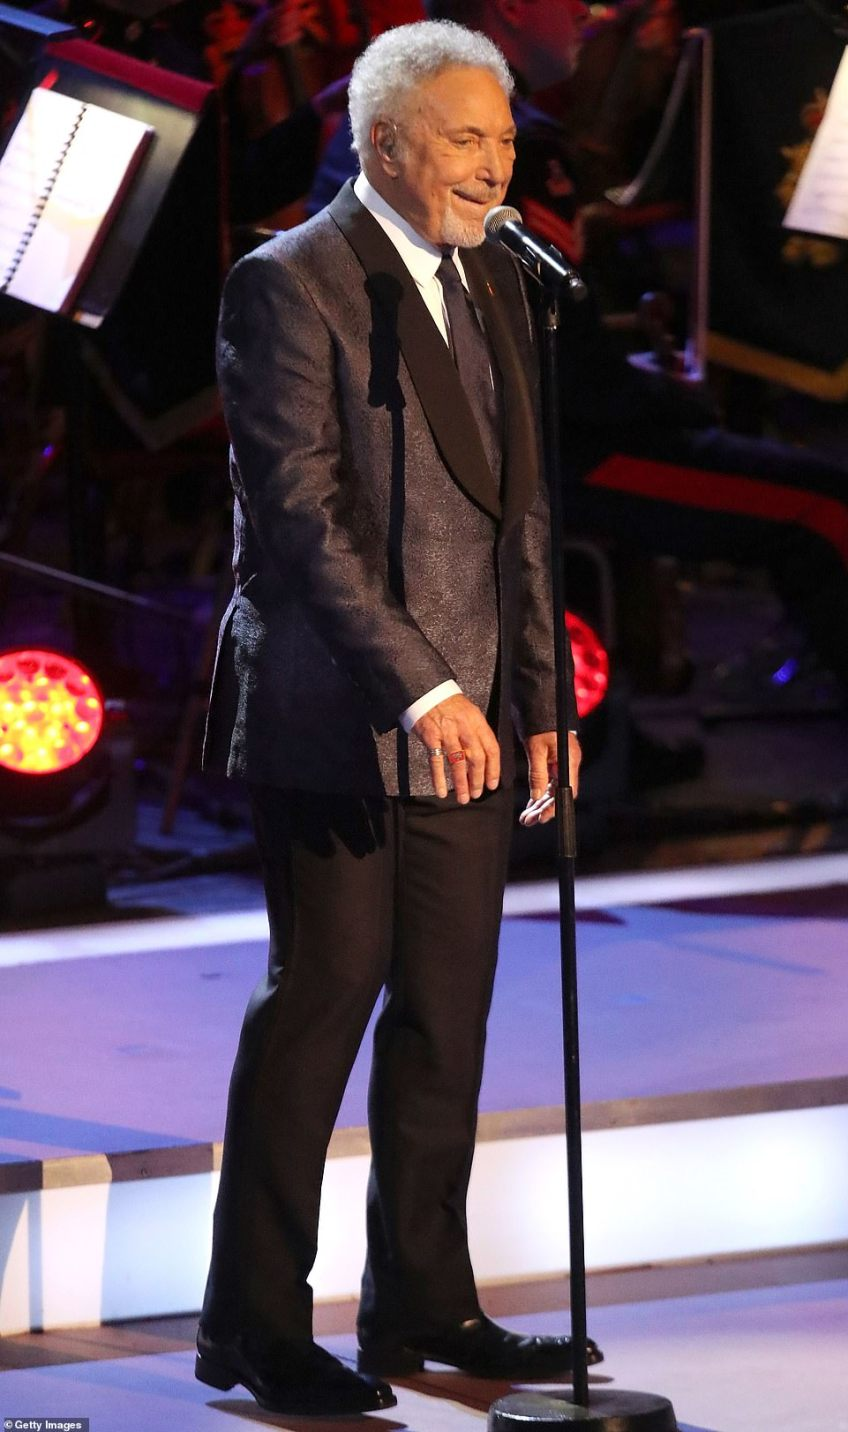 Tom Jones sings at the festival. The evening performance of the Festival of Remembrance will also be broadcast on BBC One from 8.30pm tonight